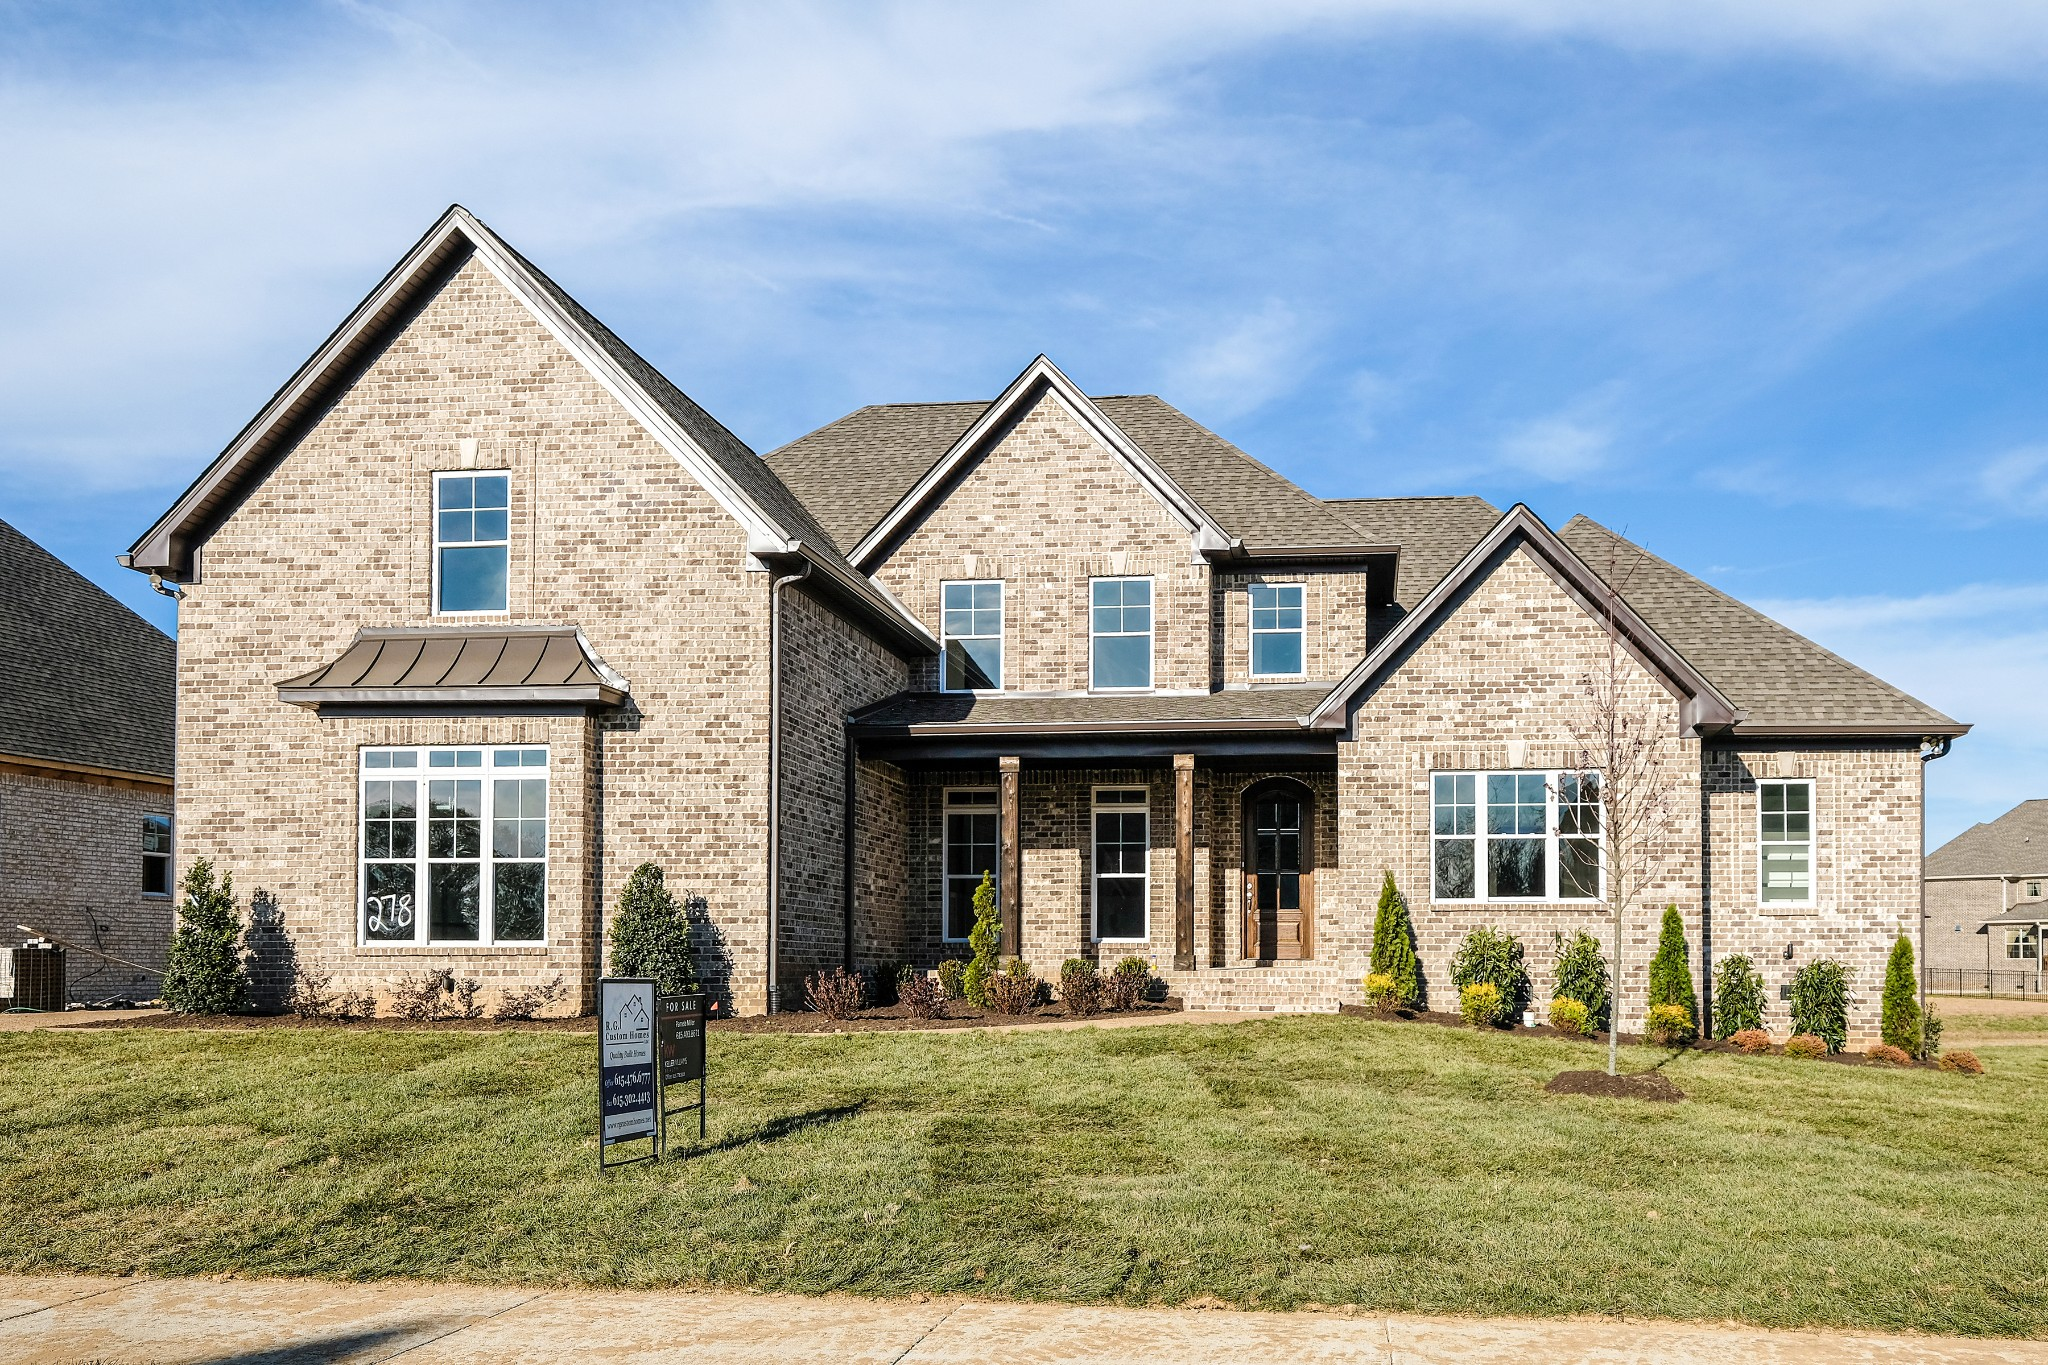 2038 Autumn Ridge Way (Lot 278), Spring Hill, Tennessee